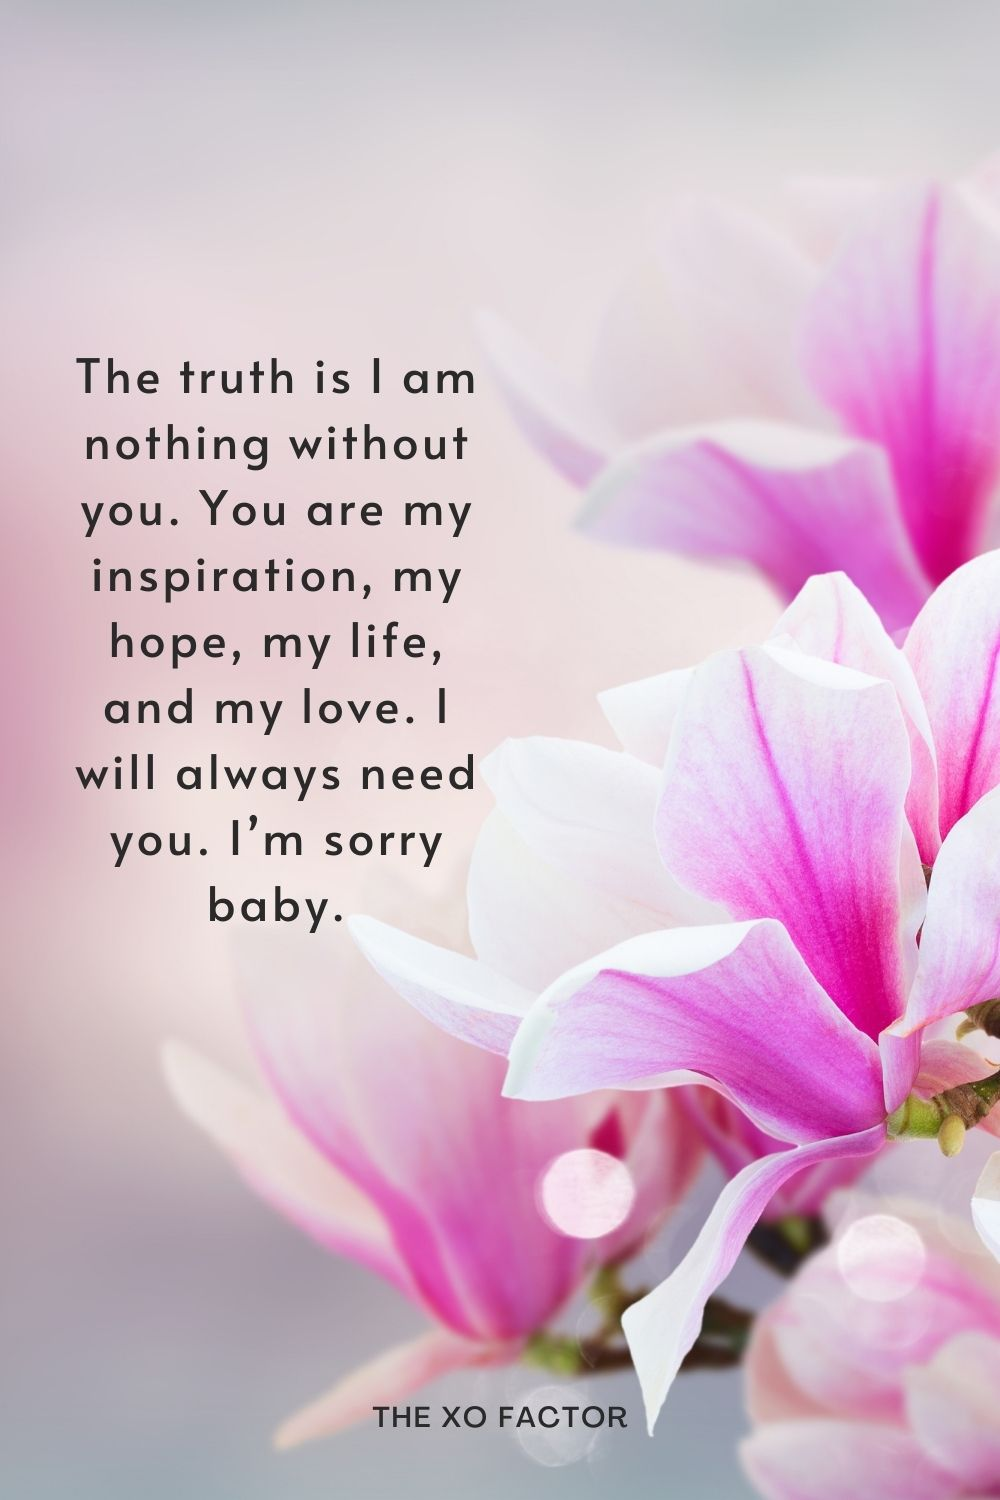 The truth is I am nothing without you. You are my inspiration, my hope, my life, and my love. I will always need you. I'm sorry baby.